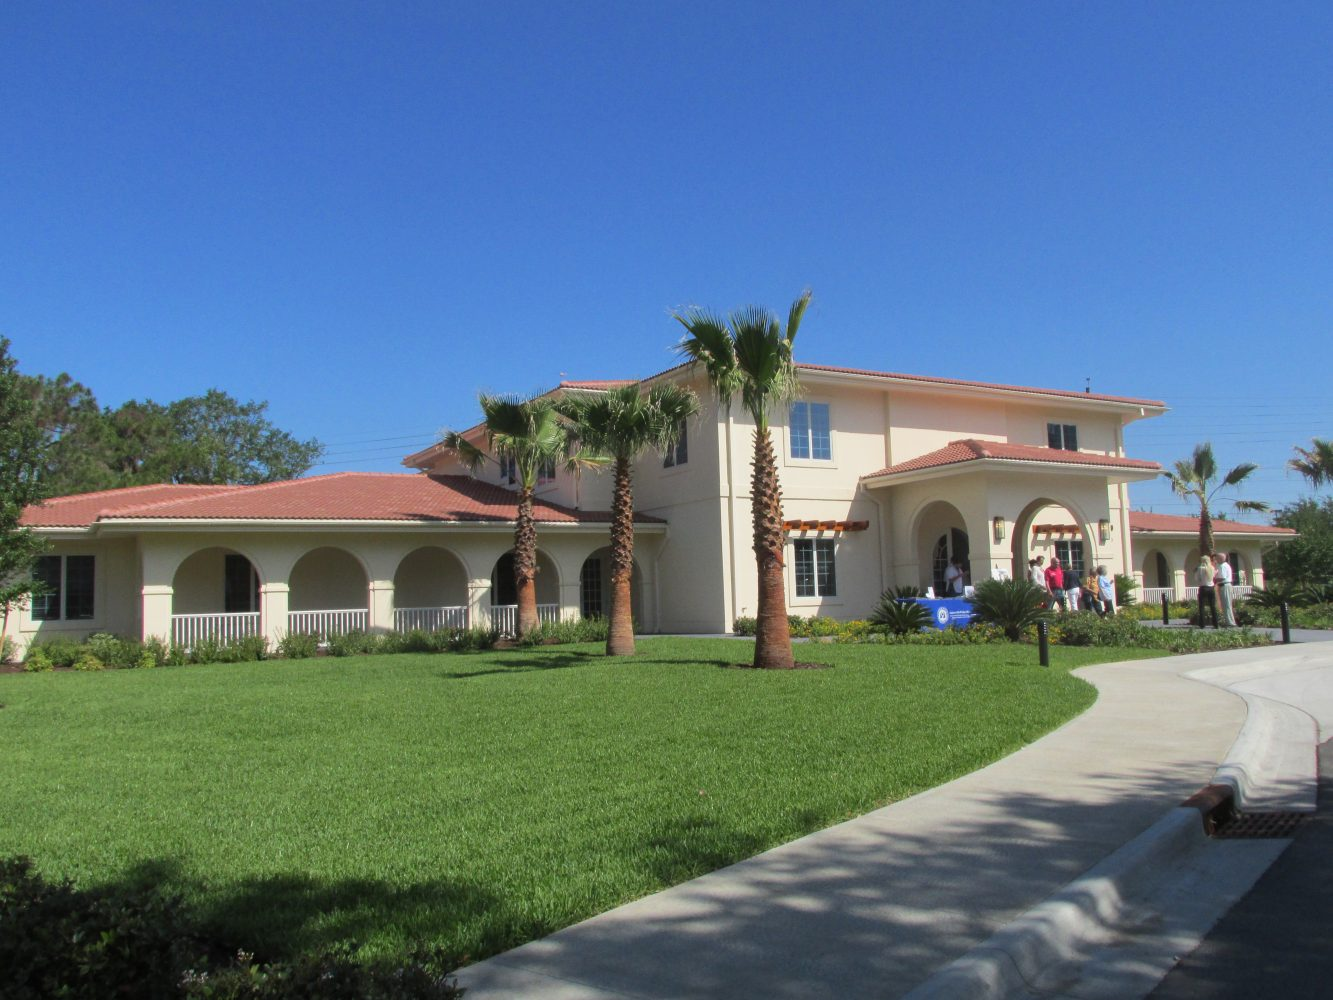 The new Fisher House located at 5106 NW 8th Ave, Gainesville, FL 32605. Just across the street from the Malcom Randall VA Medical Center